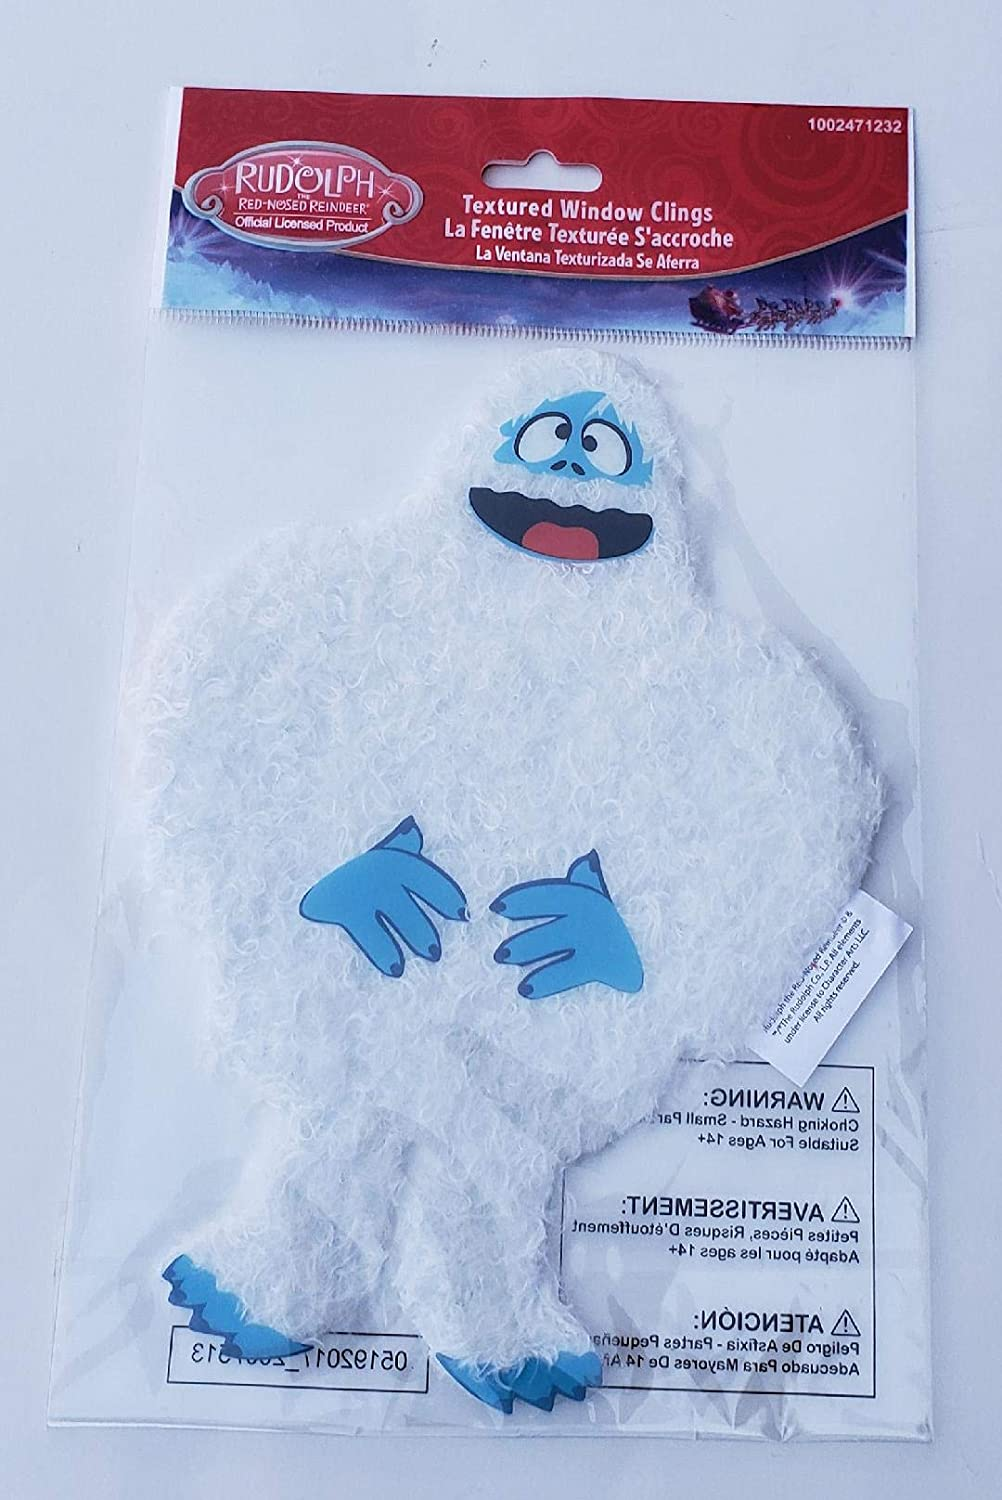 ProductWorks 8 Inch Rudolph The Red Nosed Reindeer Bumble The Abominable Snowman Textured Window Cling